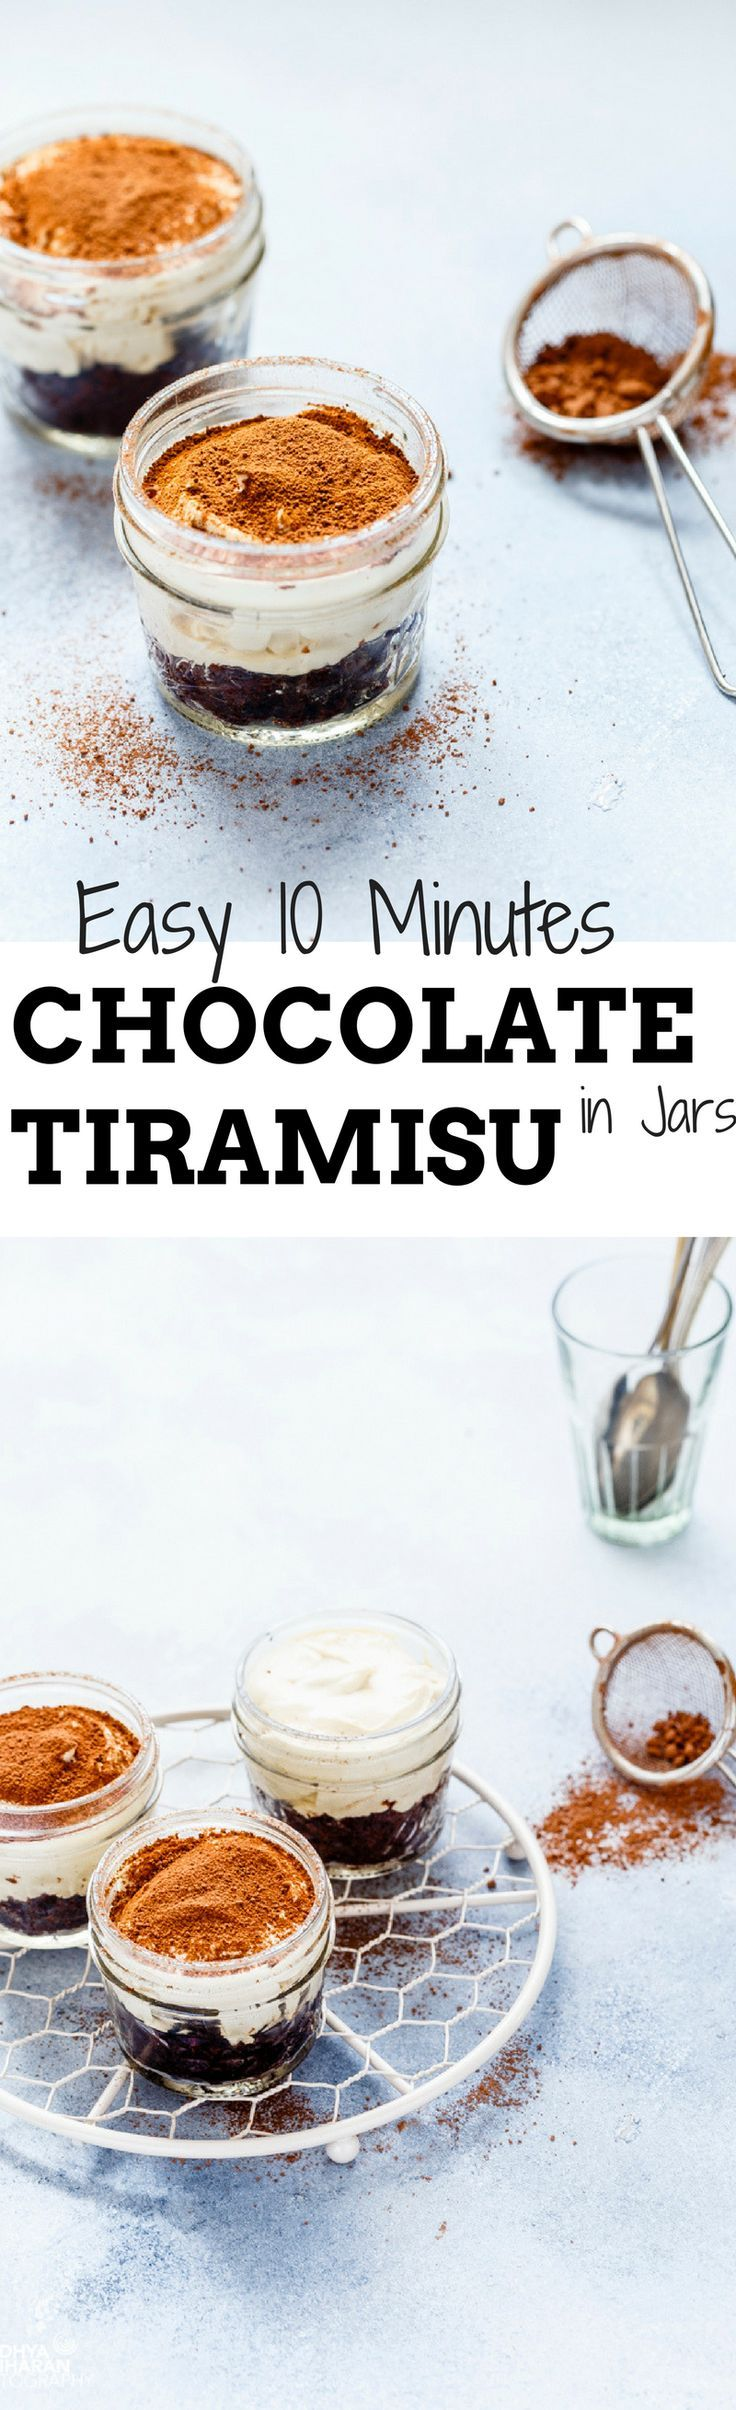 Easy 10 MINUTE CHOCOLATE TIRAMISU in Jars